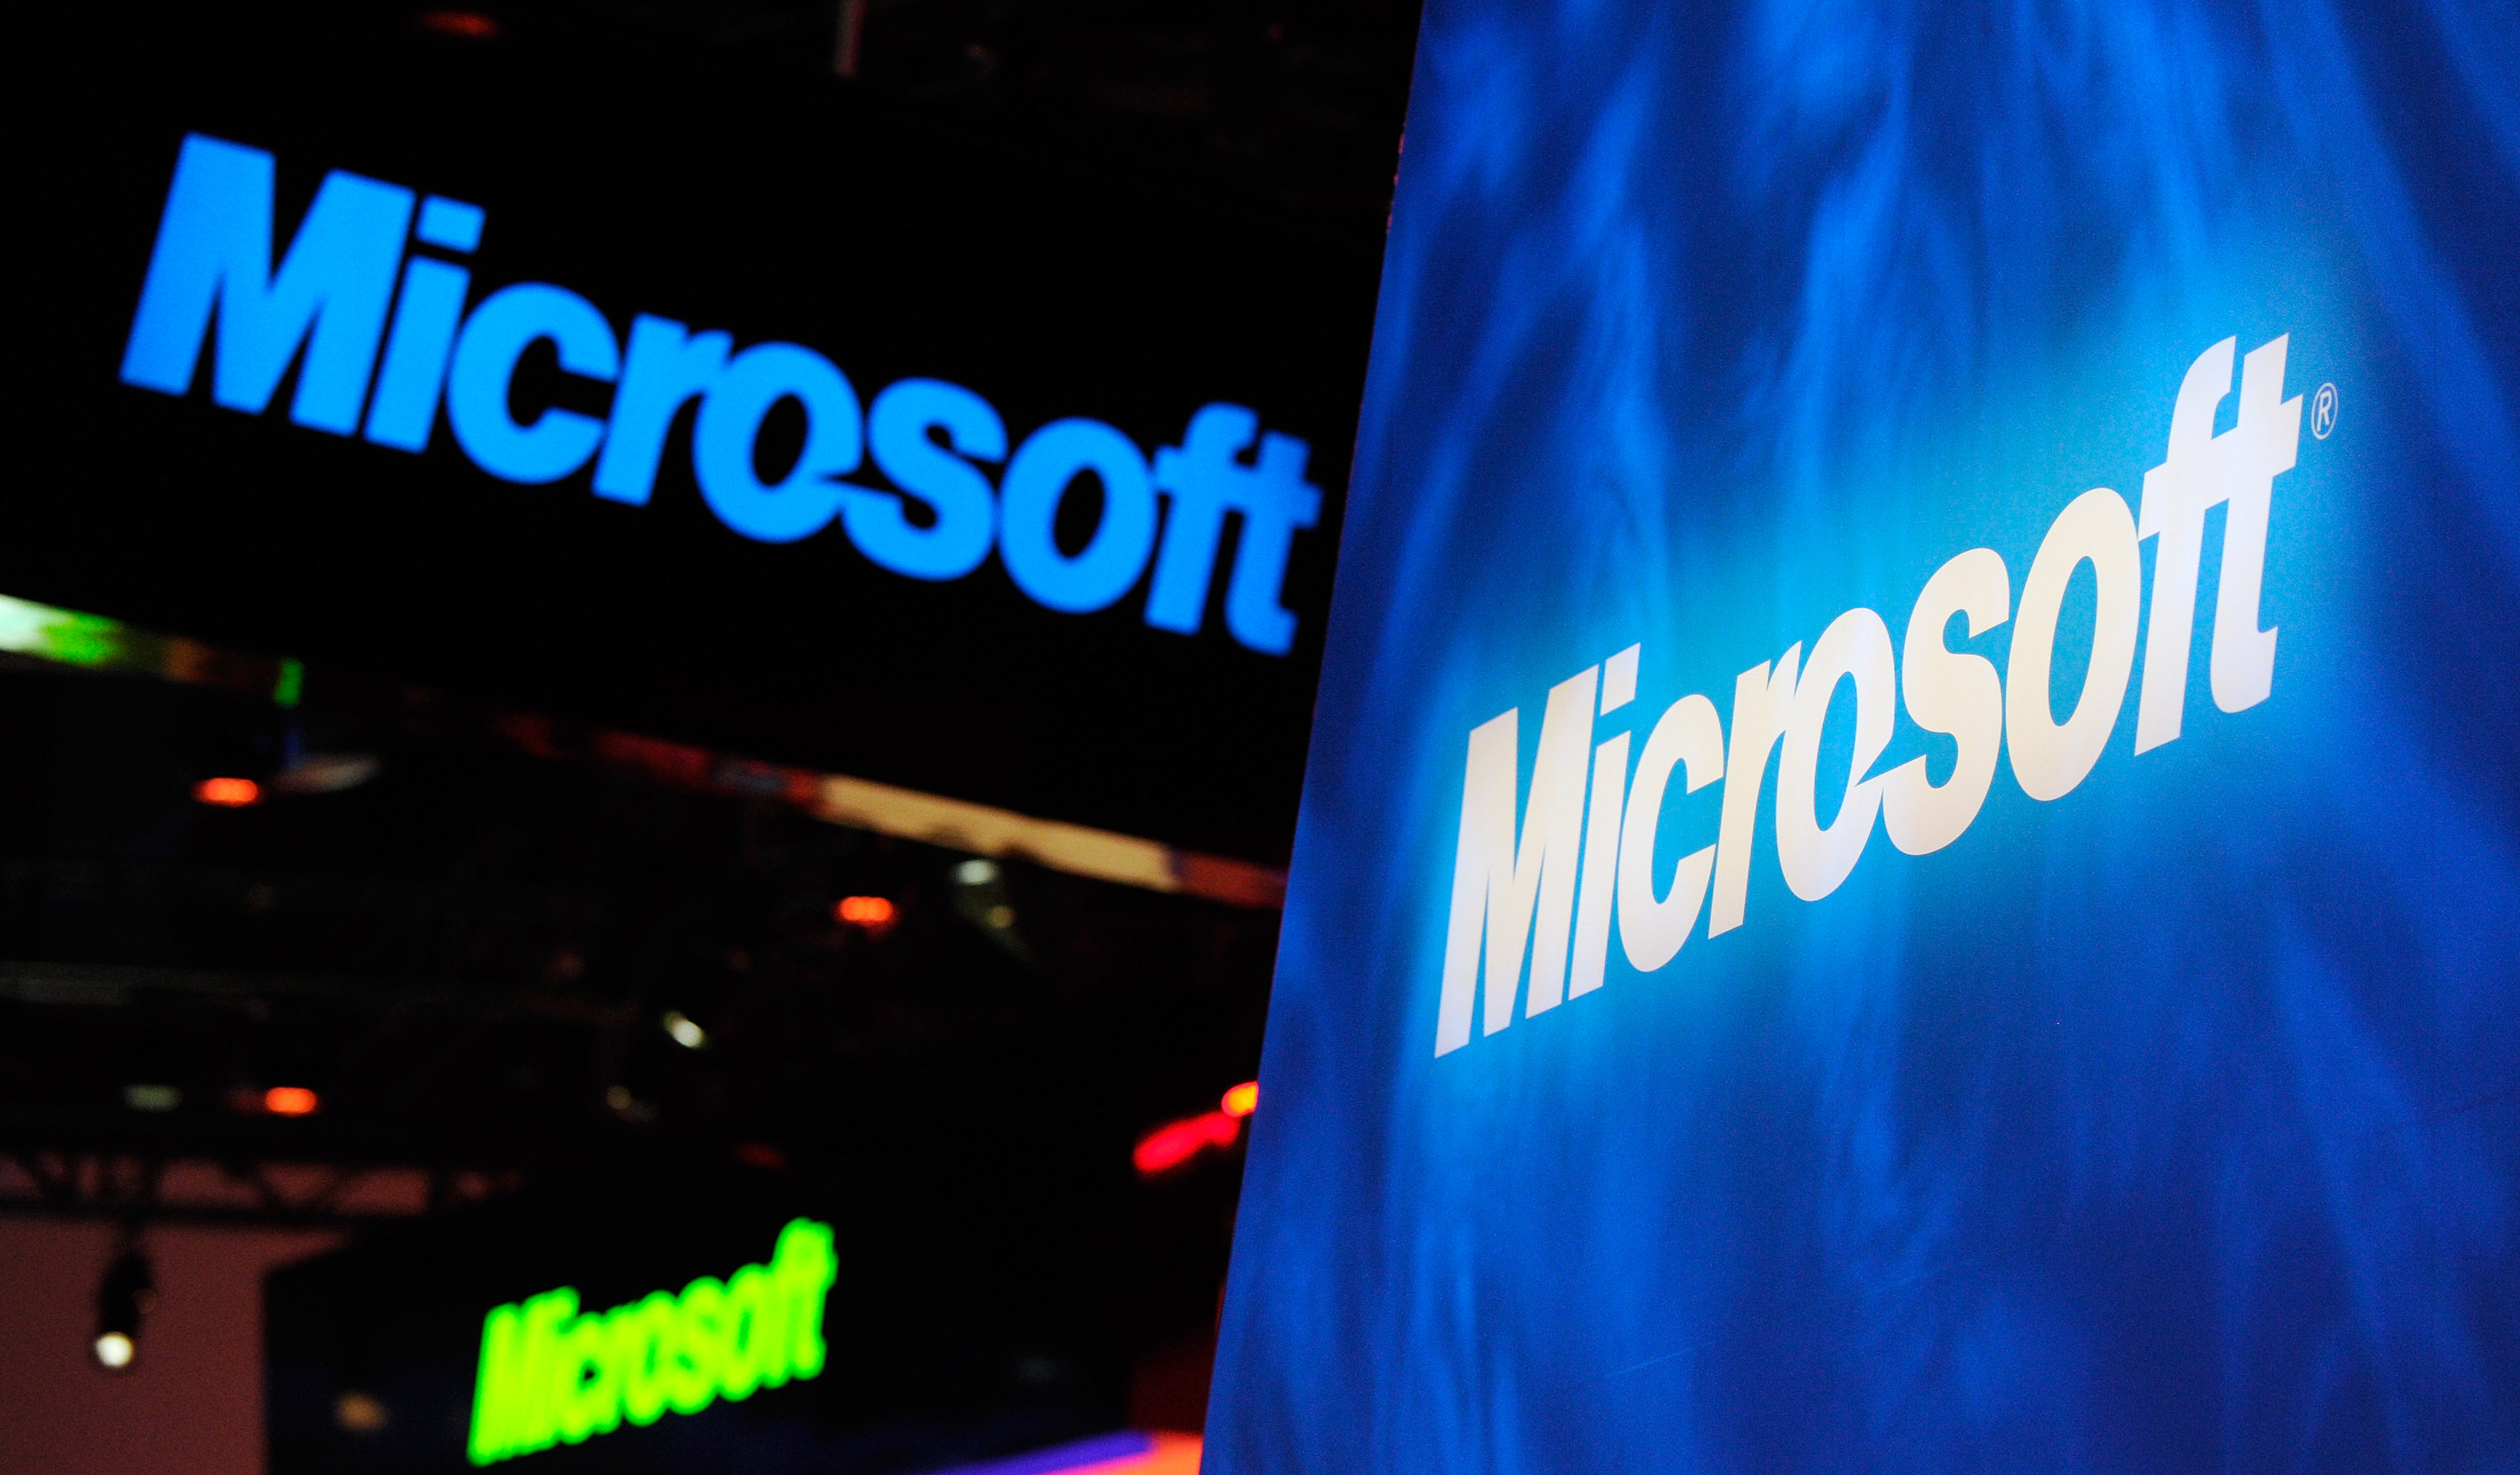 Microsoft-Nokia deal is one step closer to completion now the US DOJ has given its blessing